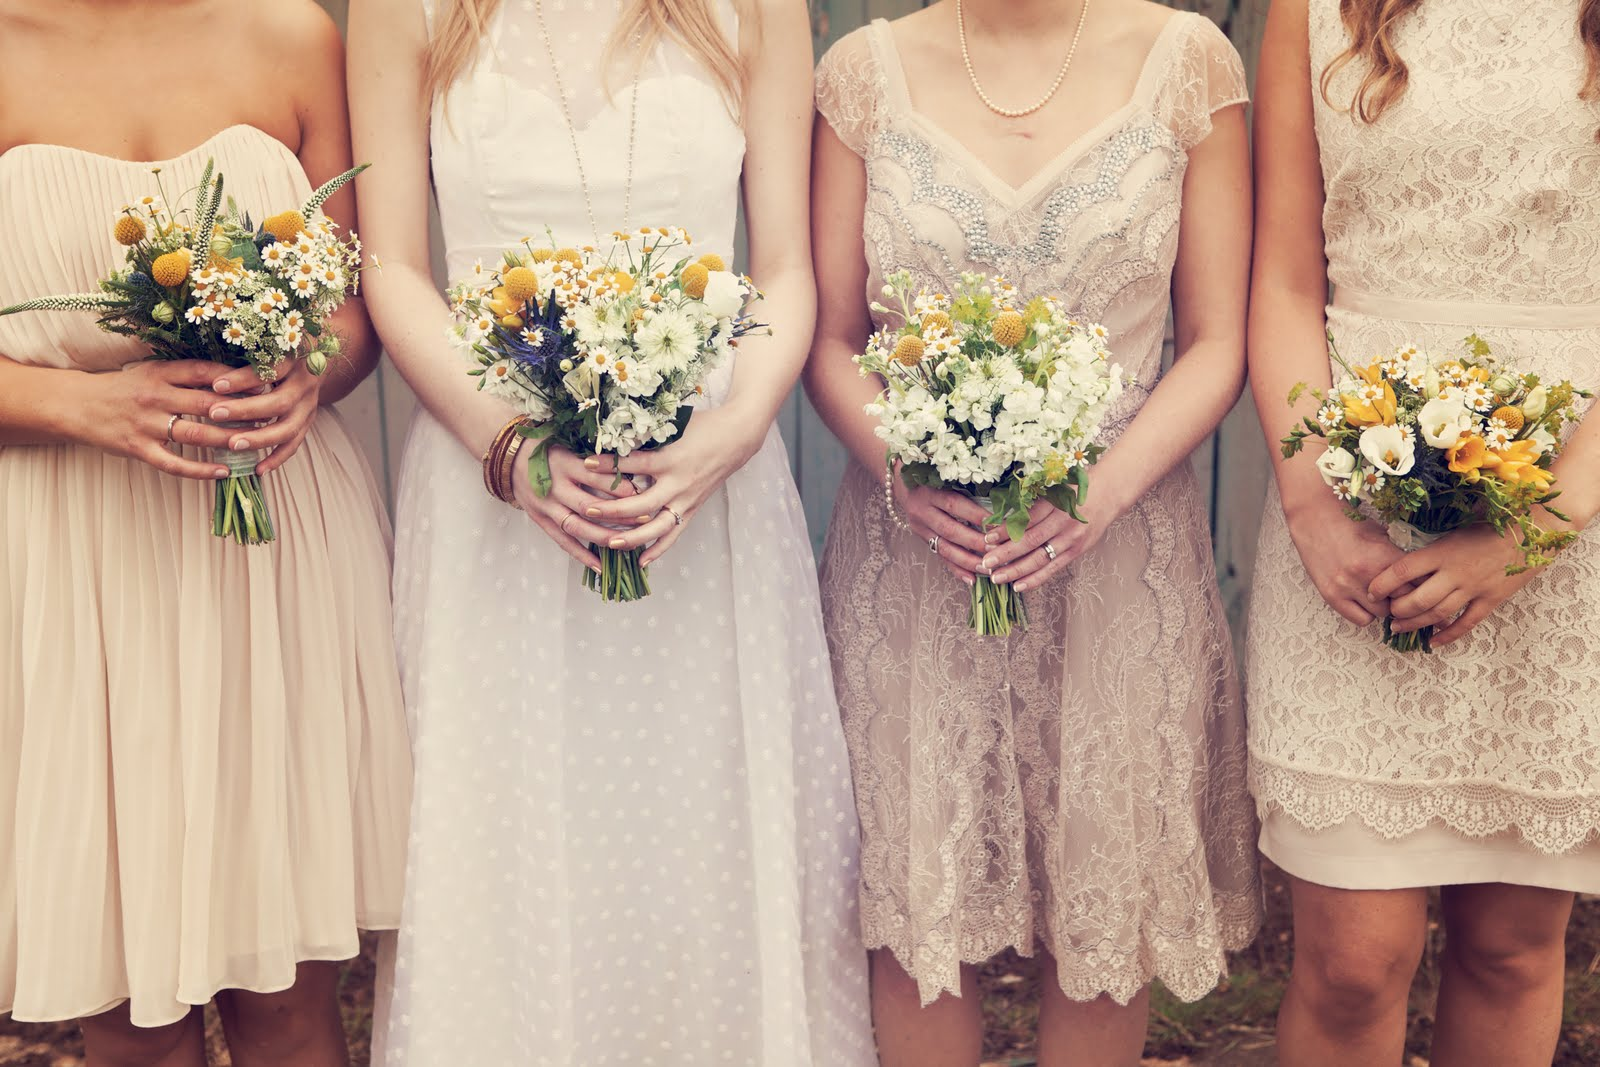 Bolts arrows february 2013 mix match bridesmaid dresses ombrellifo Image collections